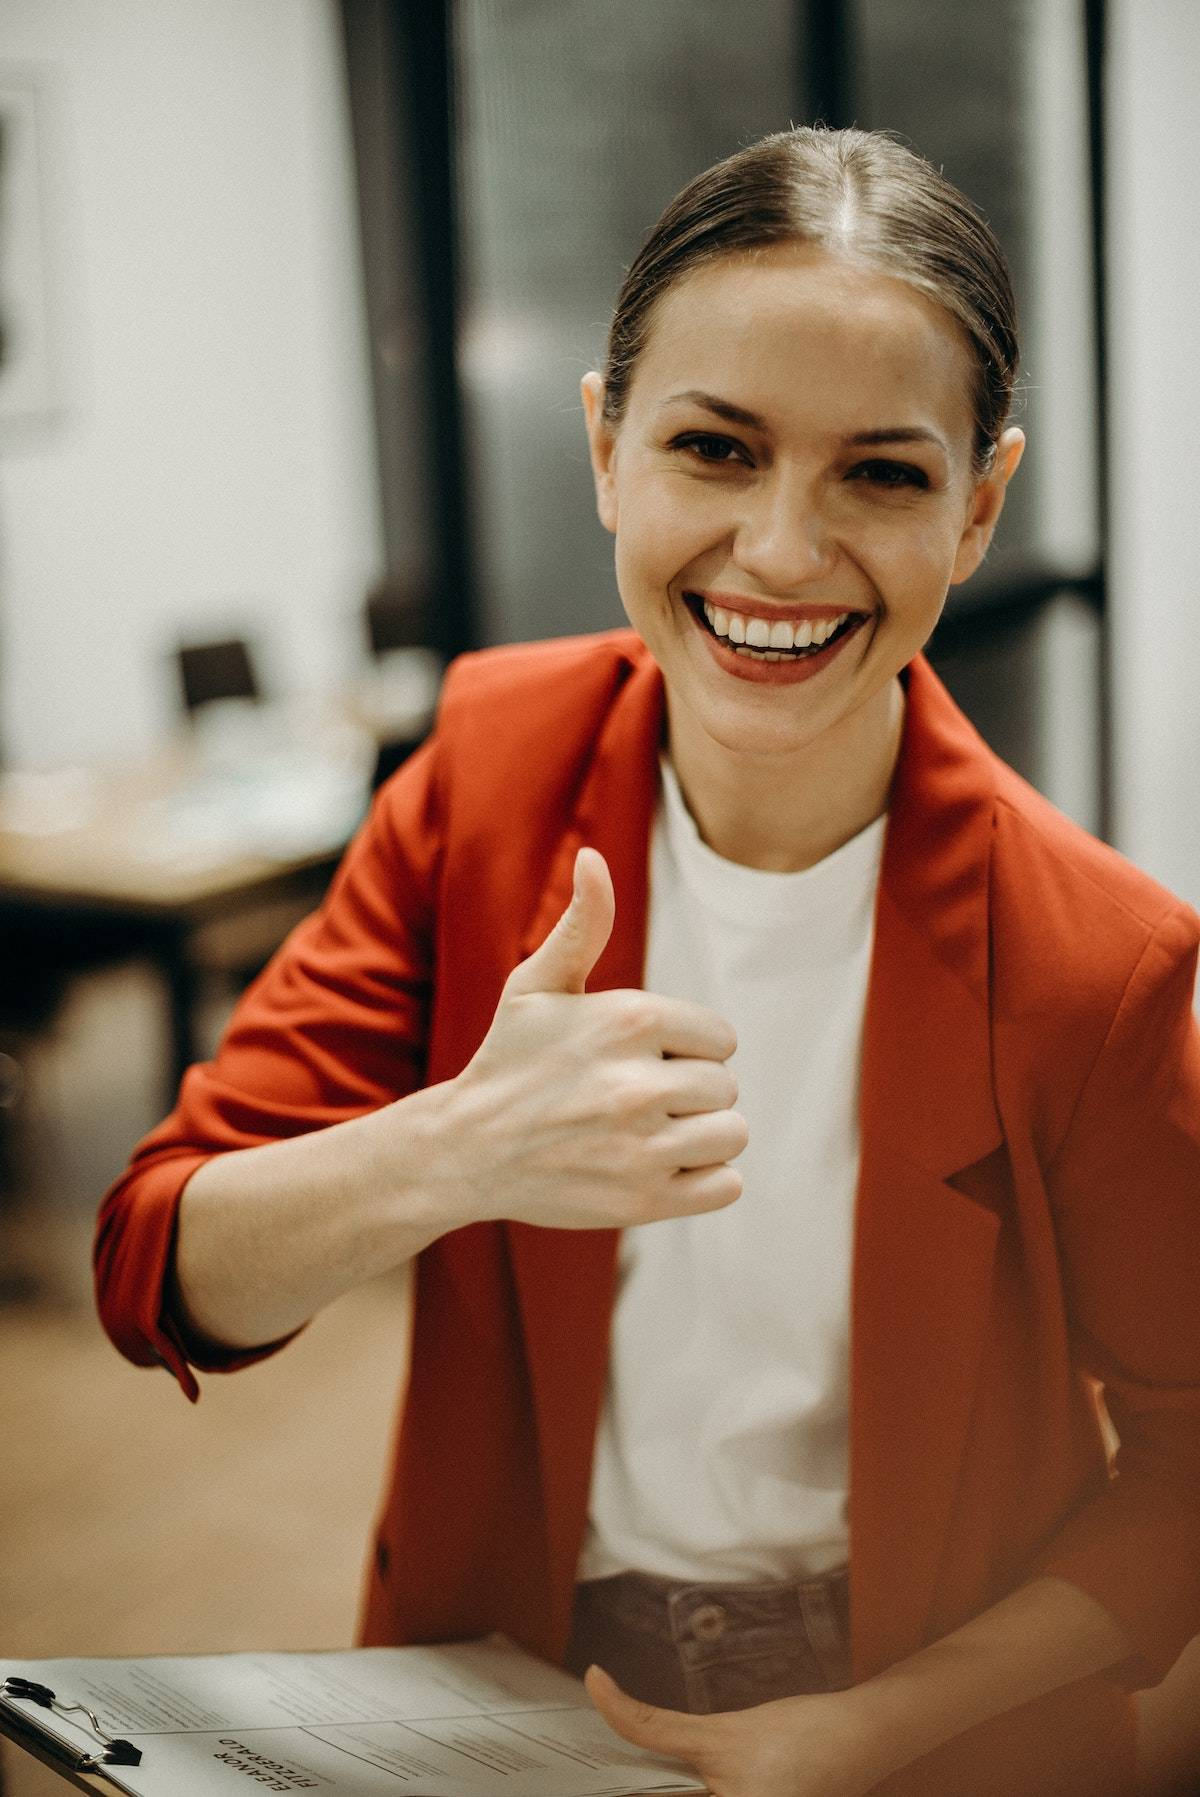 A woman smiling and giving the thumbs up